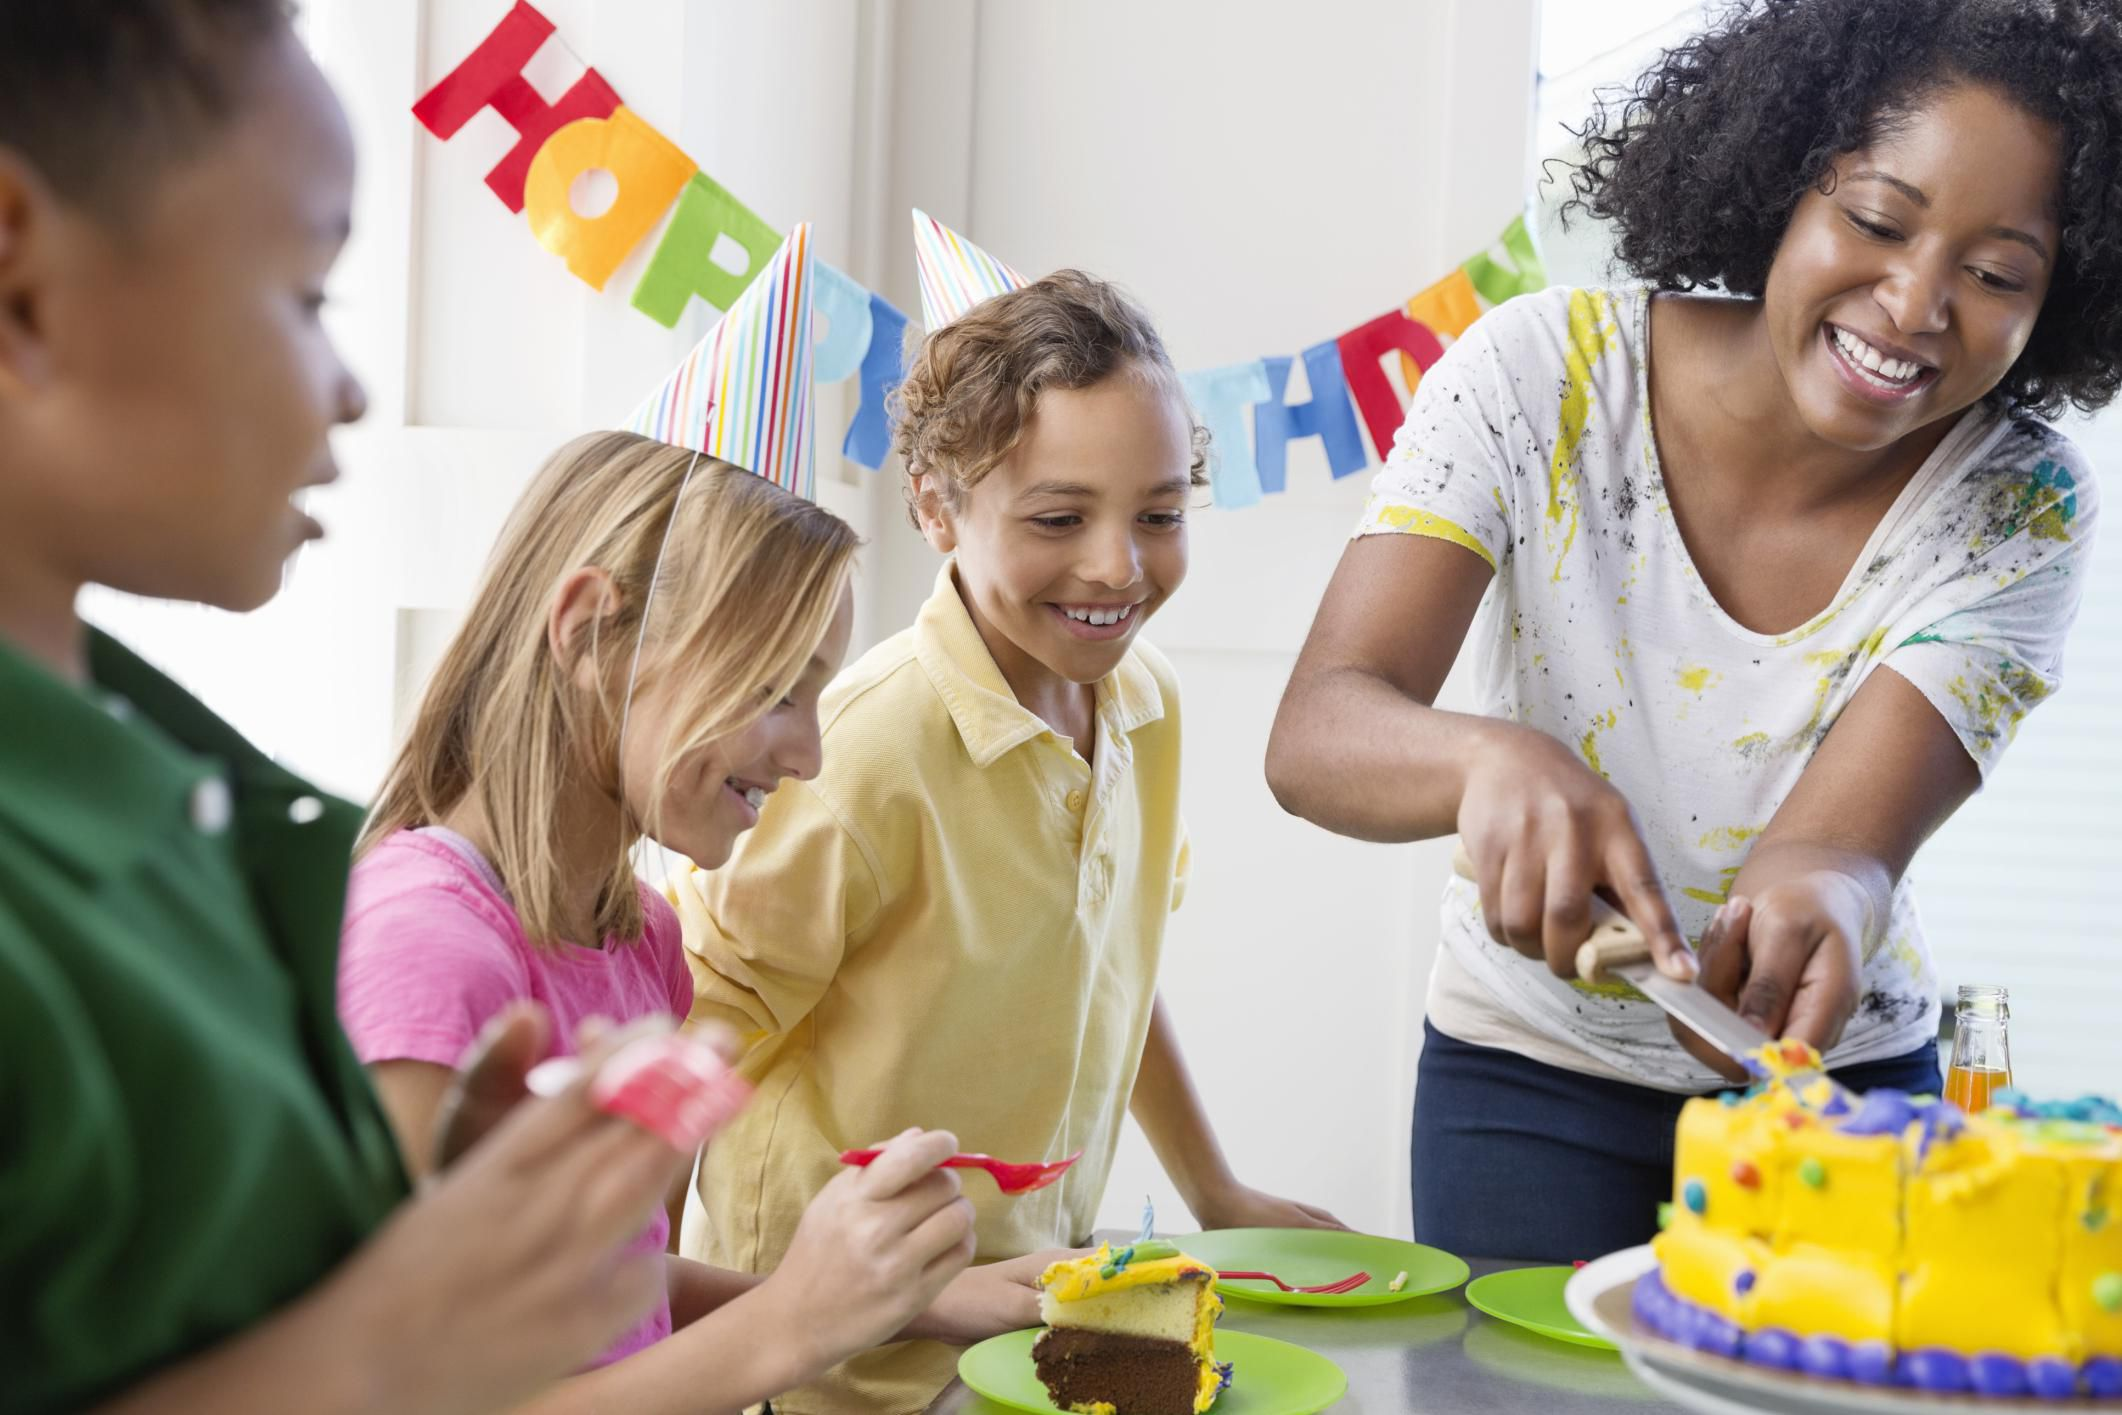 Cool Ideas For An Th Birthday Party - Childrens birthday party etiquette uk